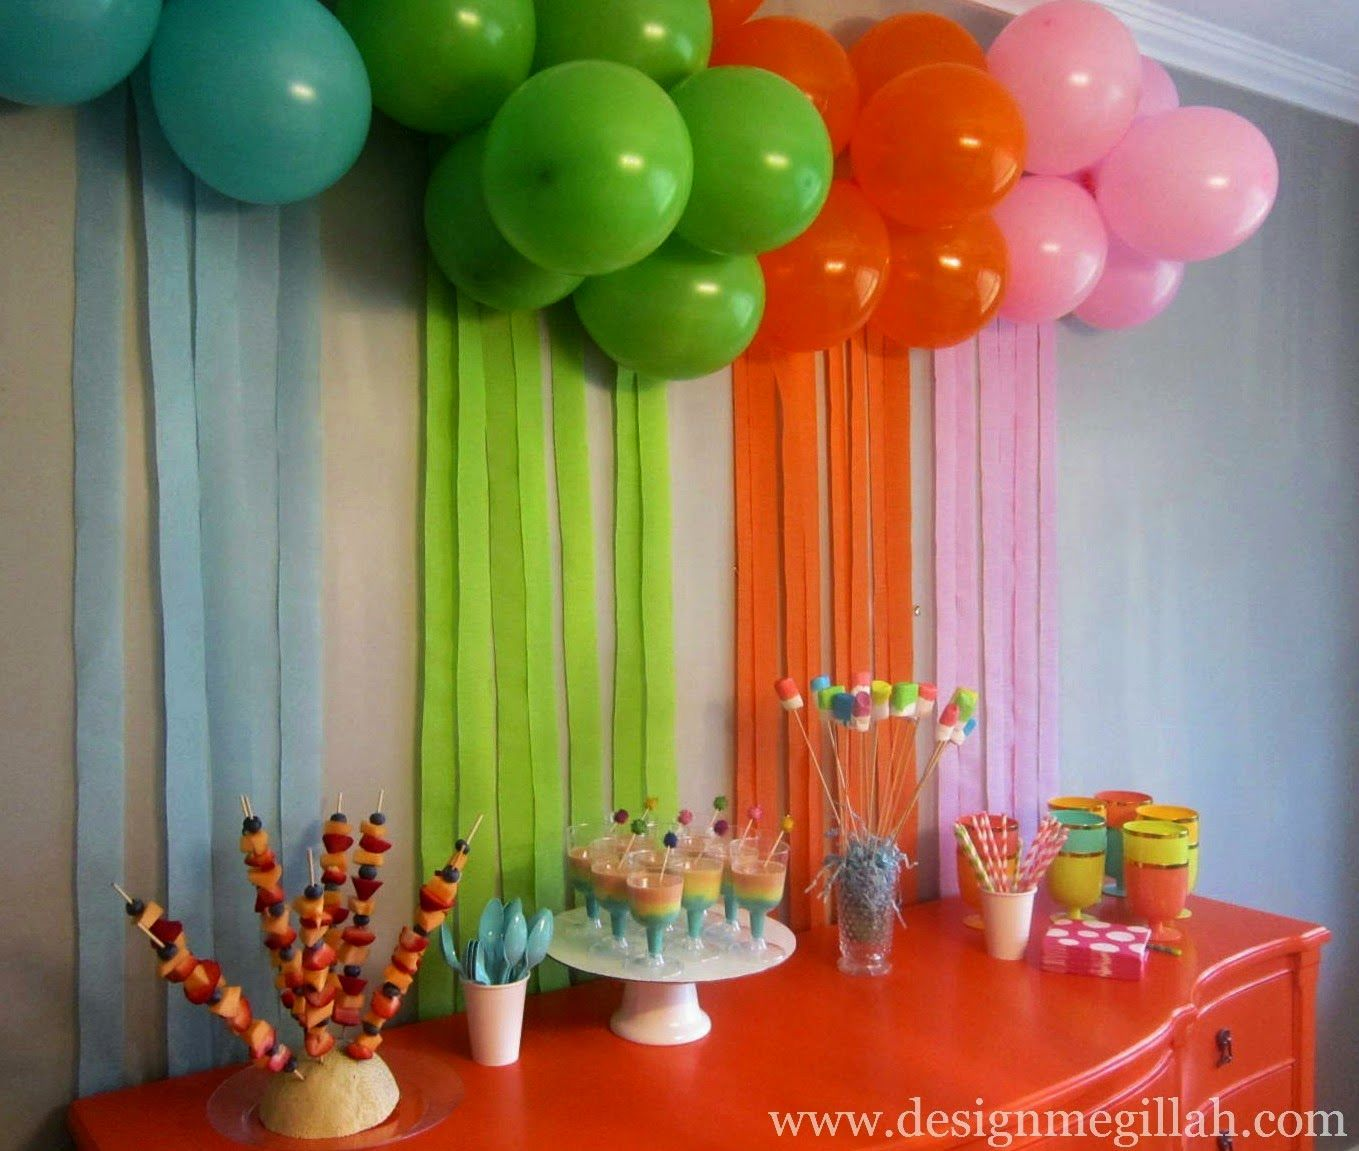 Bday Decoration Ideas At Home Simple Decorating Party and Supplies